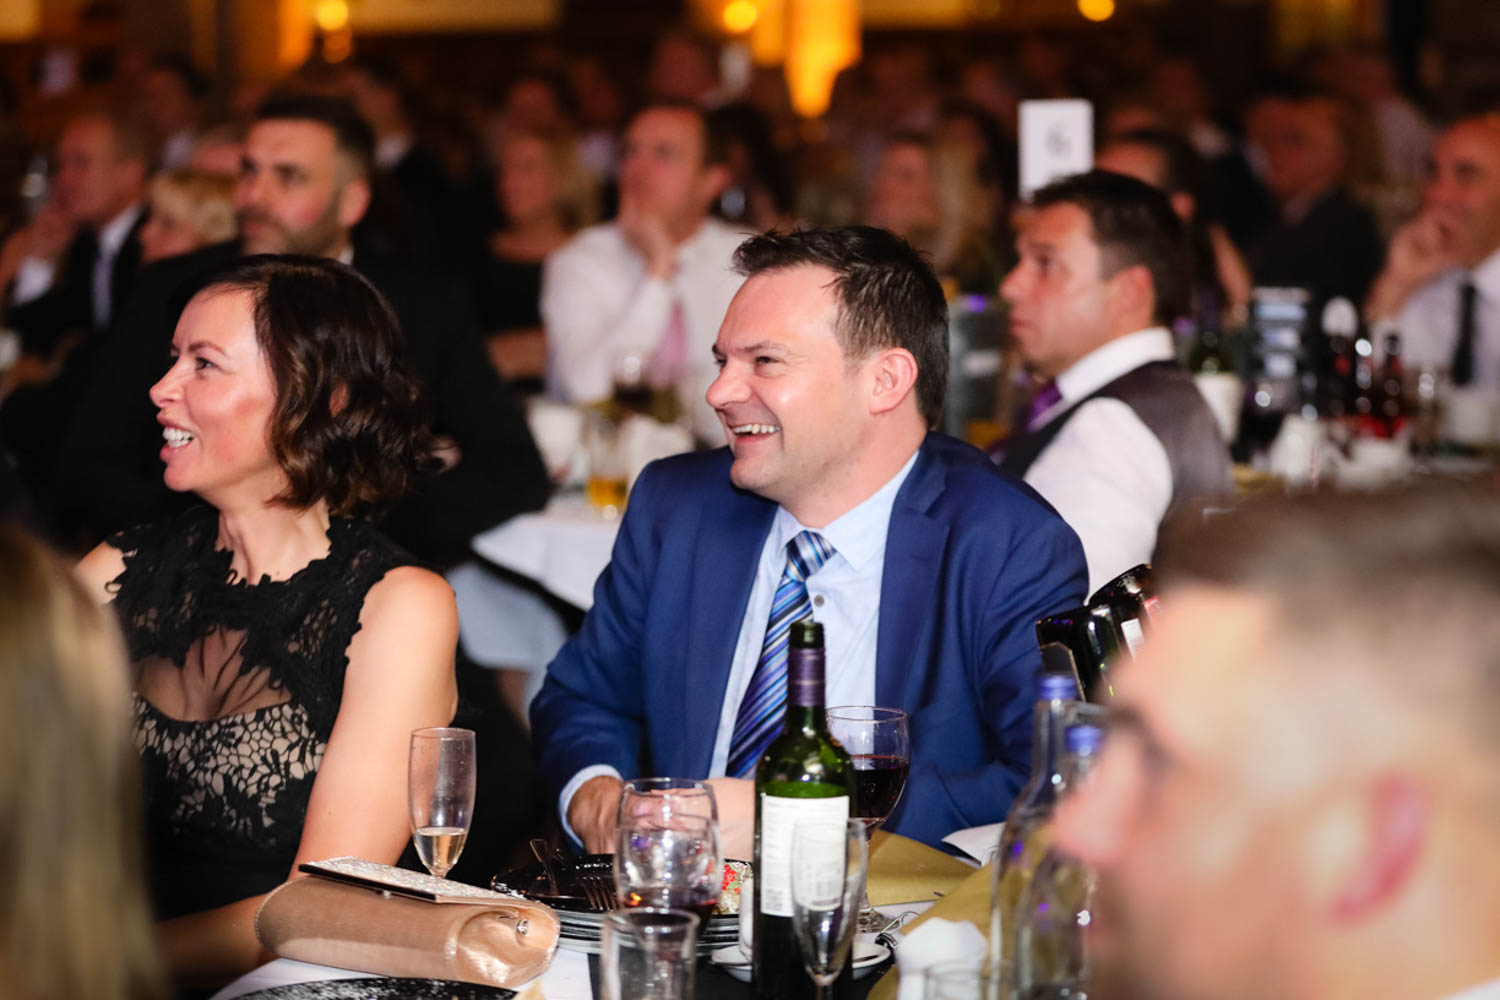 Rob_freeman_photography_yorkshire_charity_event_fundraising